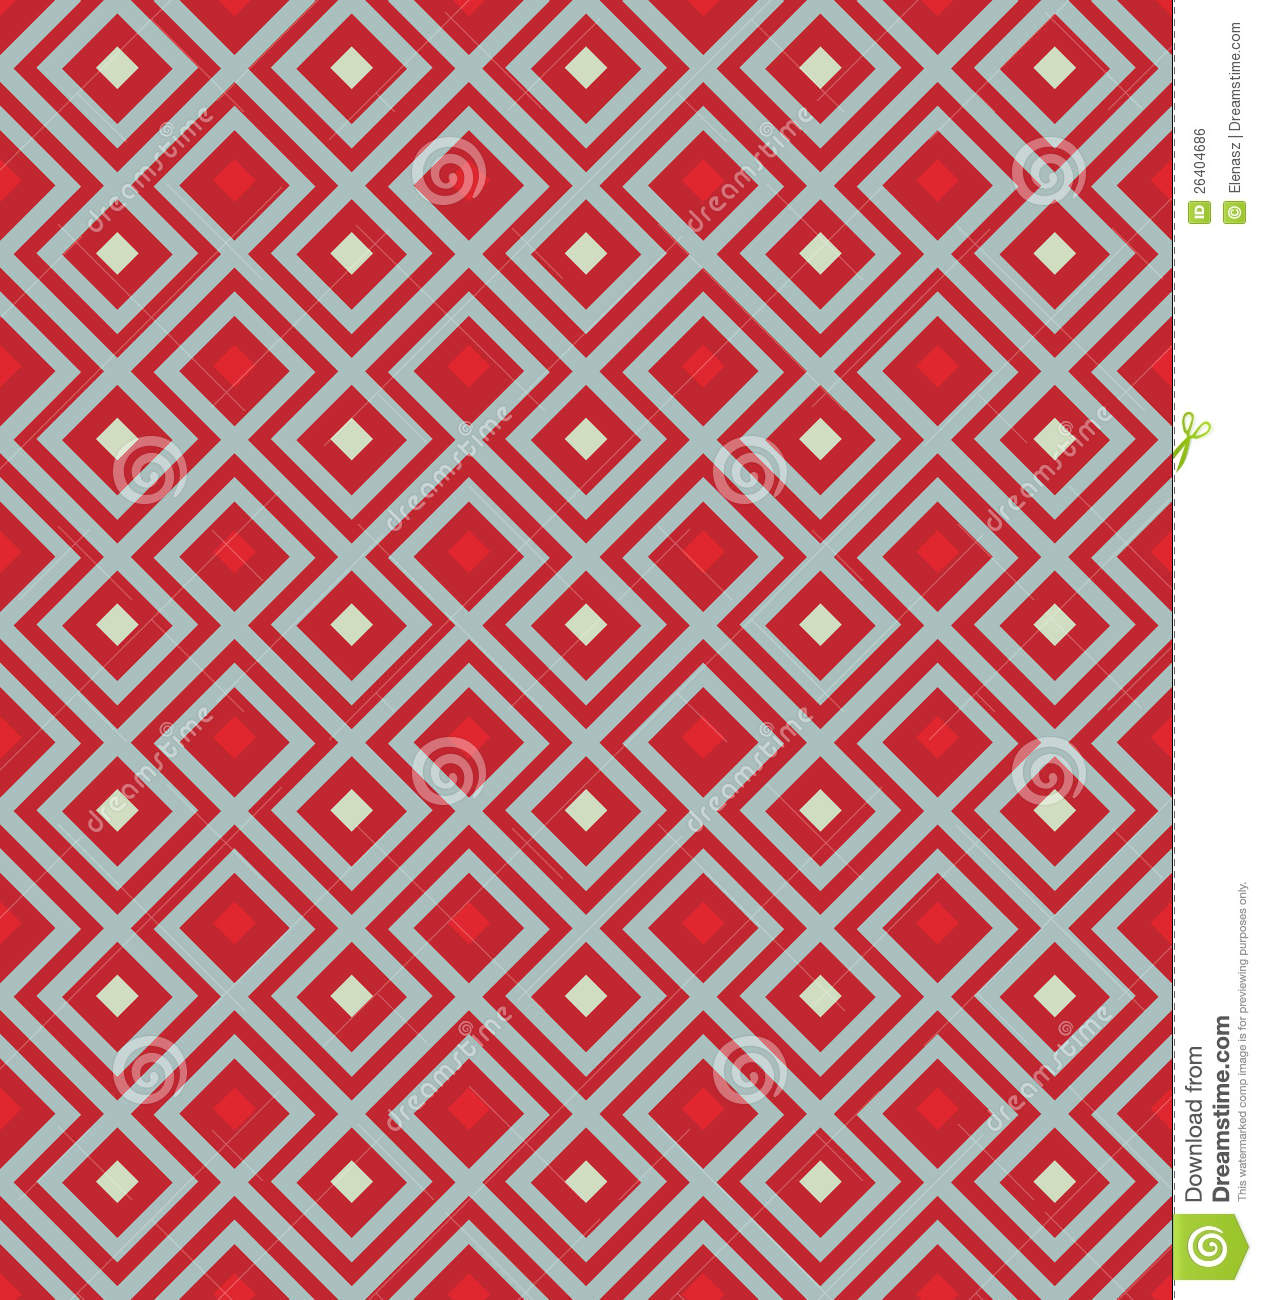 Red background with rhombus